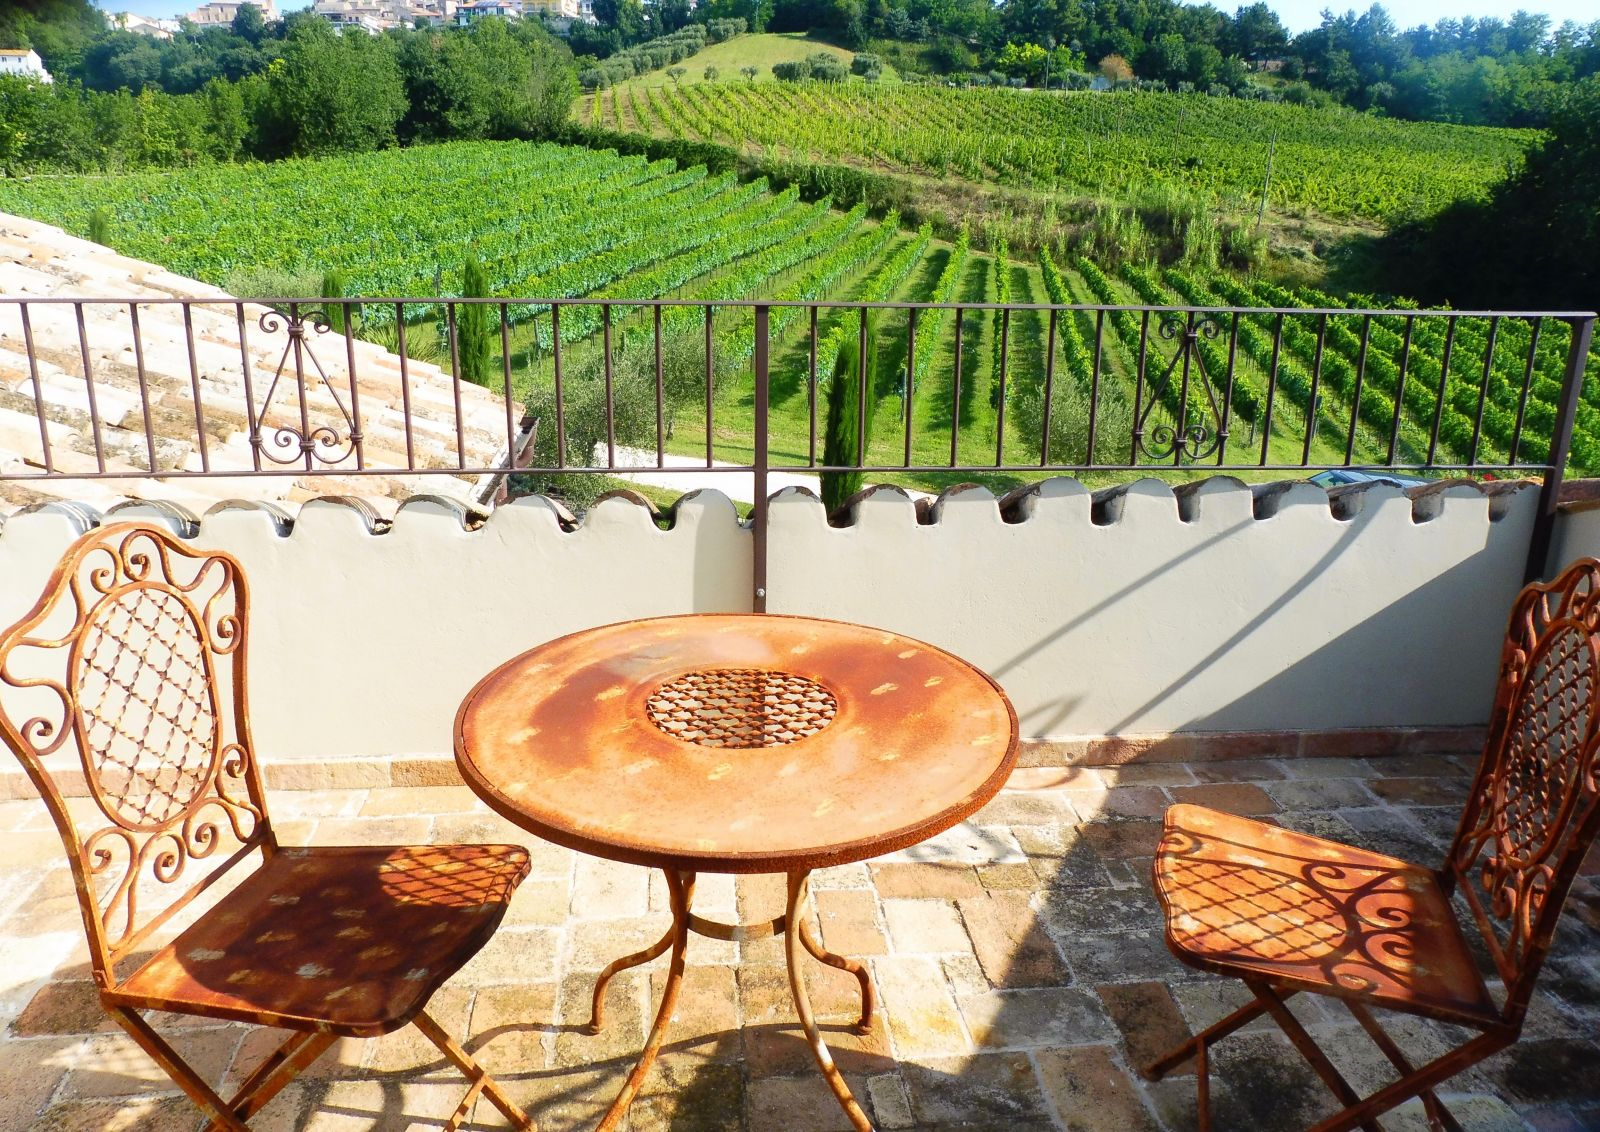 My private balcony for the week, overlooking the vineyard!